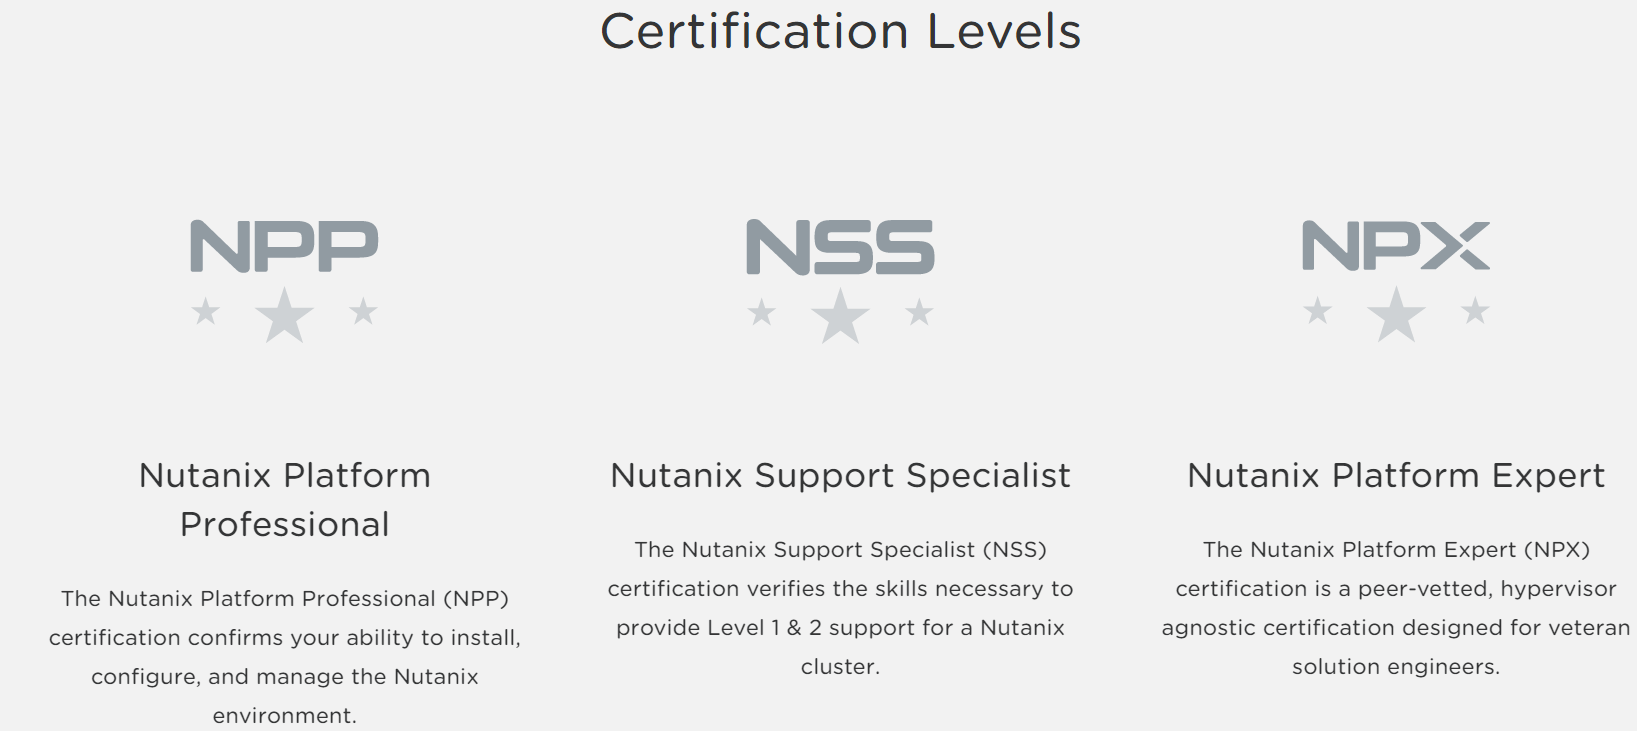 Vmwareguruz how to become certified nutanix platform the nutanix platform professional npp certification confirms your ability to install configure and manage the nutanix environment 1betcityfo Image collections